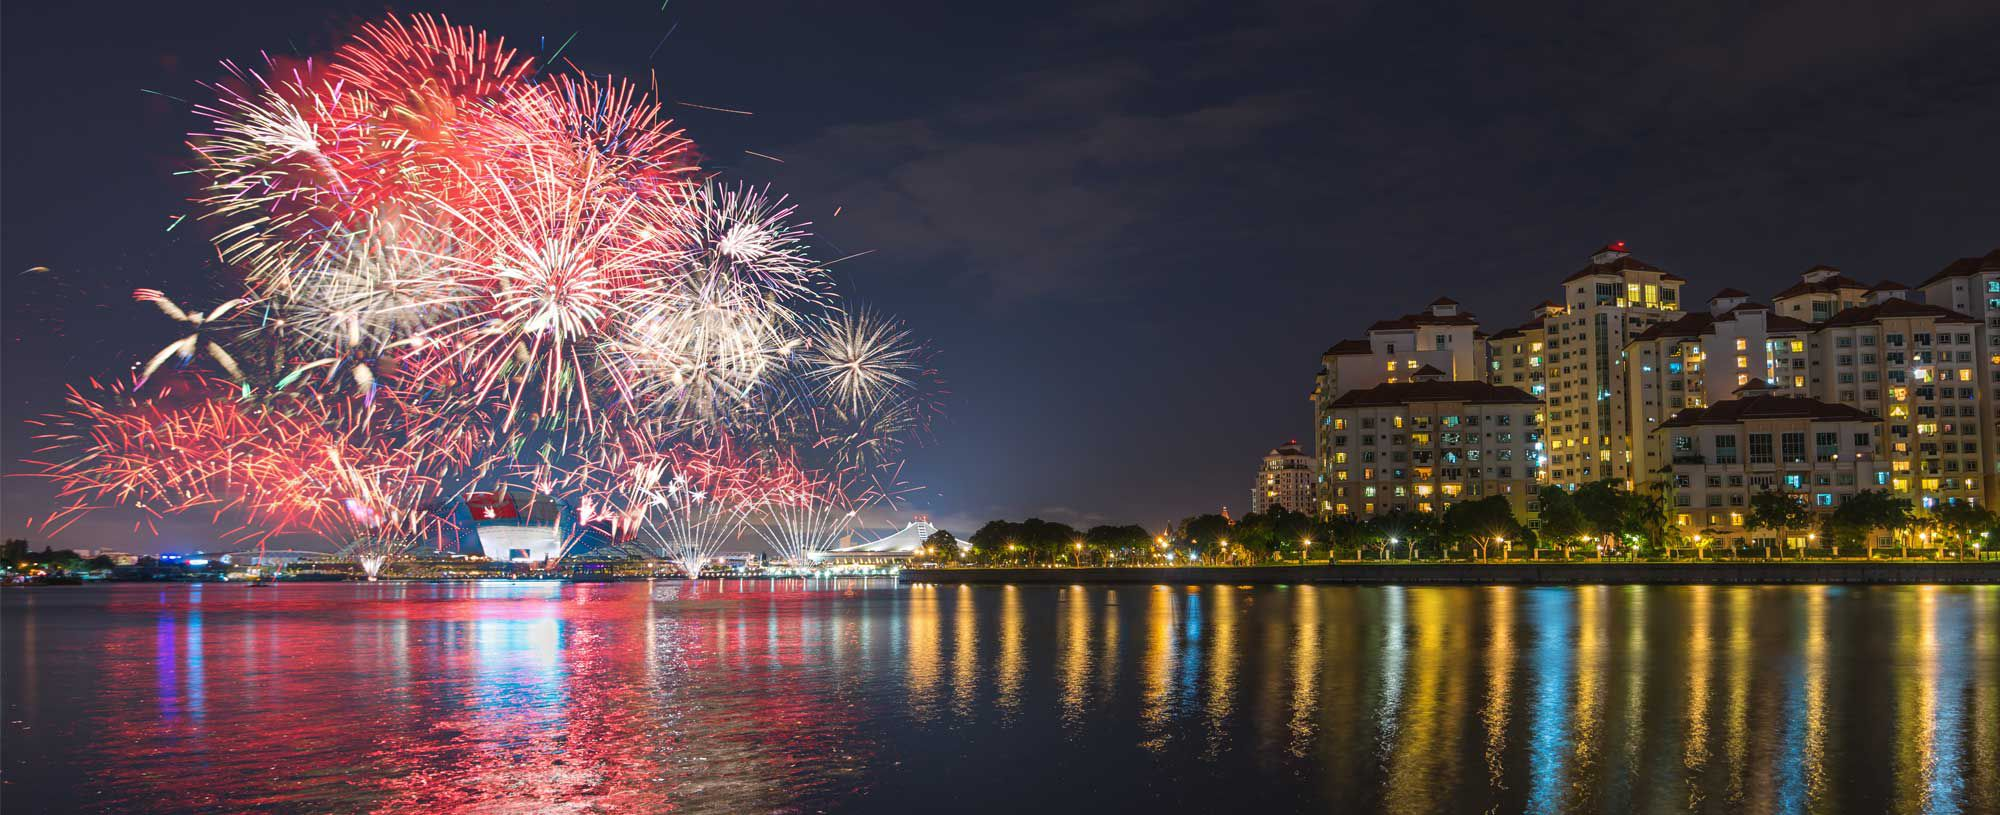 Best Fourth Of July Celebrations In Florida Florida Travel Life